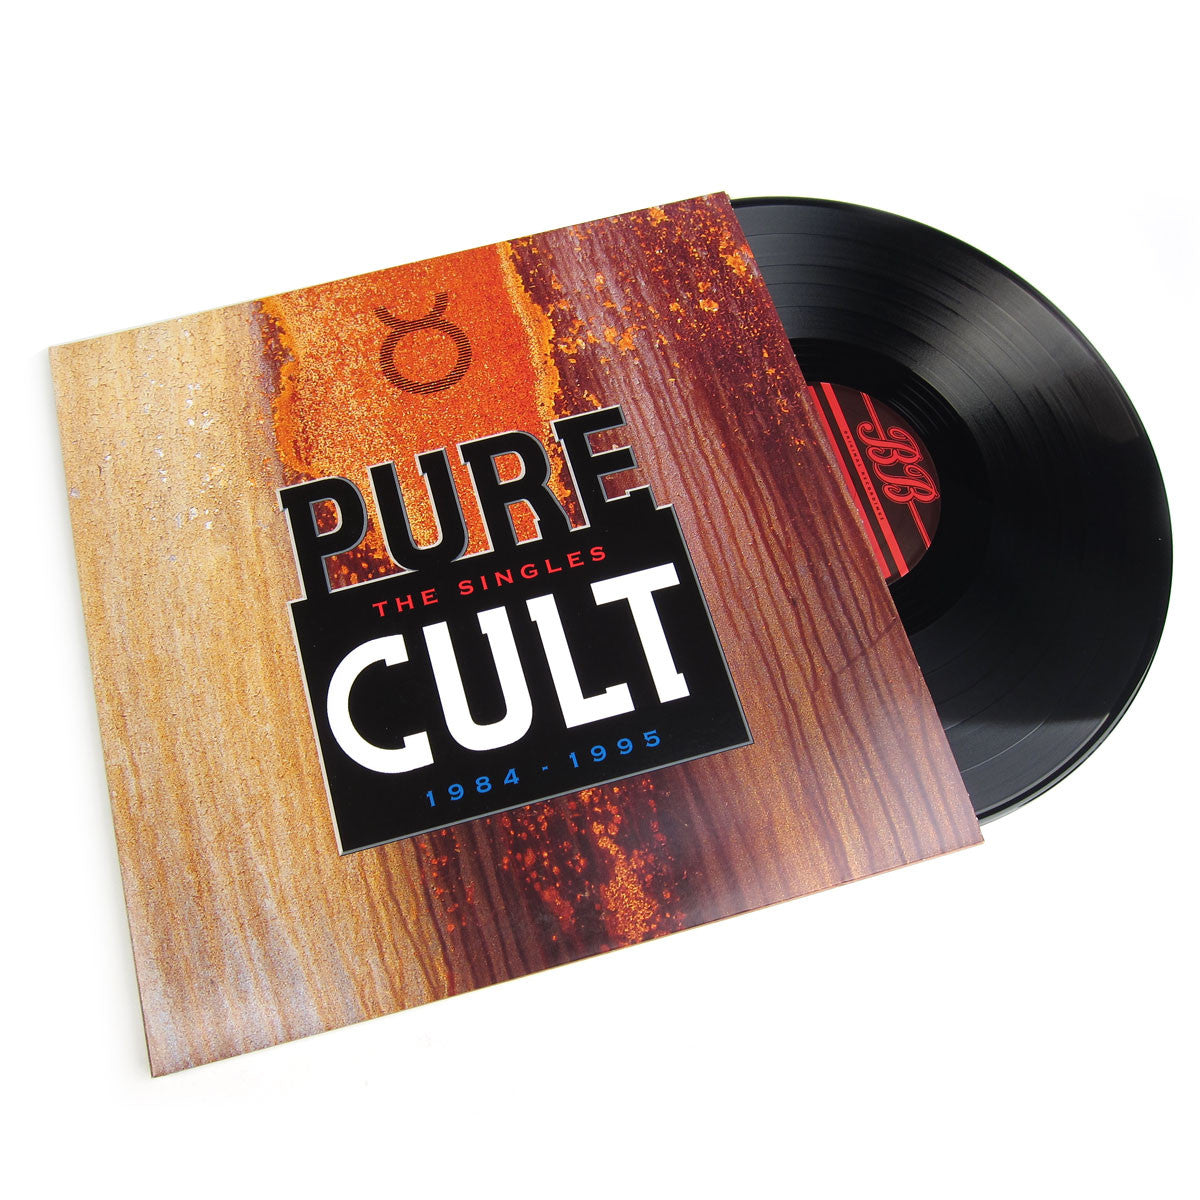 The Cult: Pure Cult The Singles 1984 - 1995 Vinyl 2LP